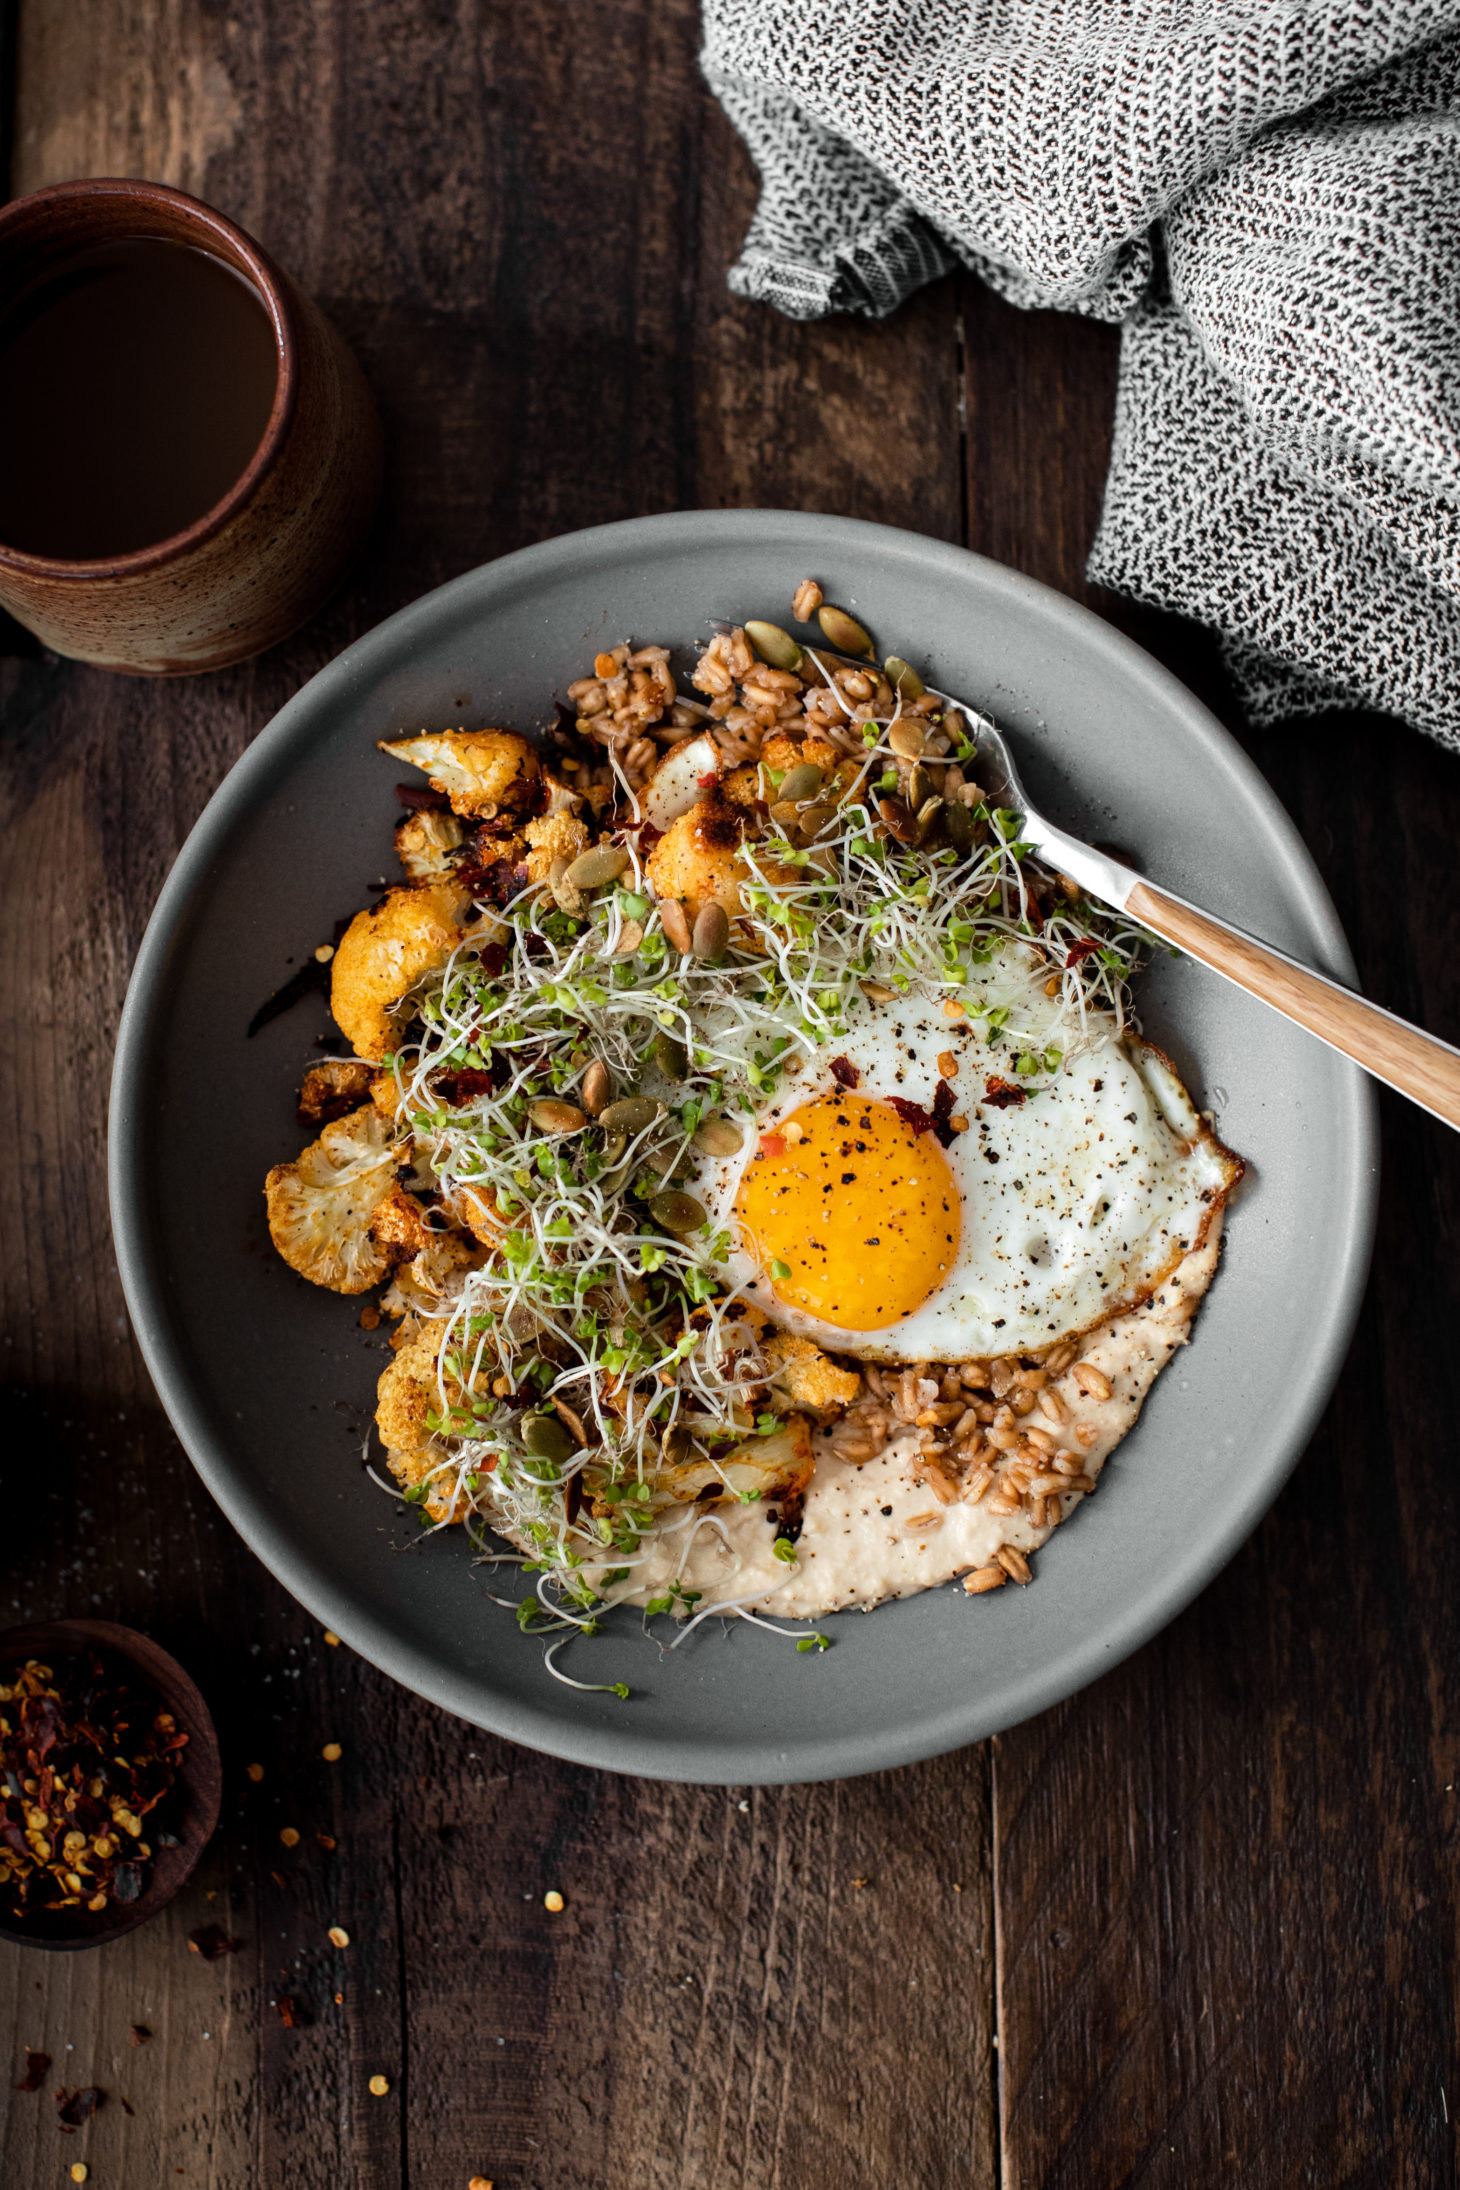 Overhead photograph of a grey bowl with fried egg on-top of paprika roasted cauliflower, farro, and hummus.